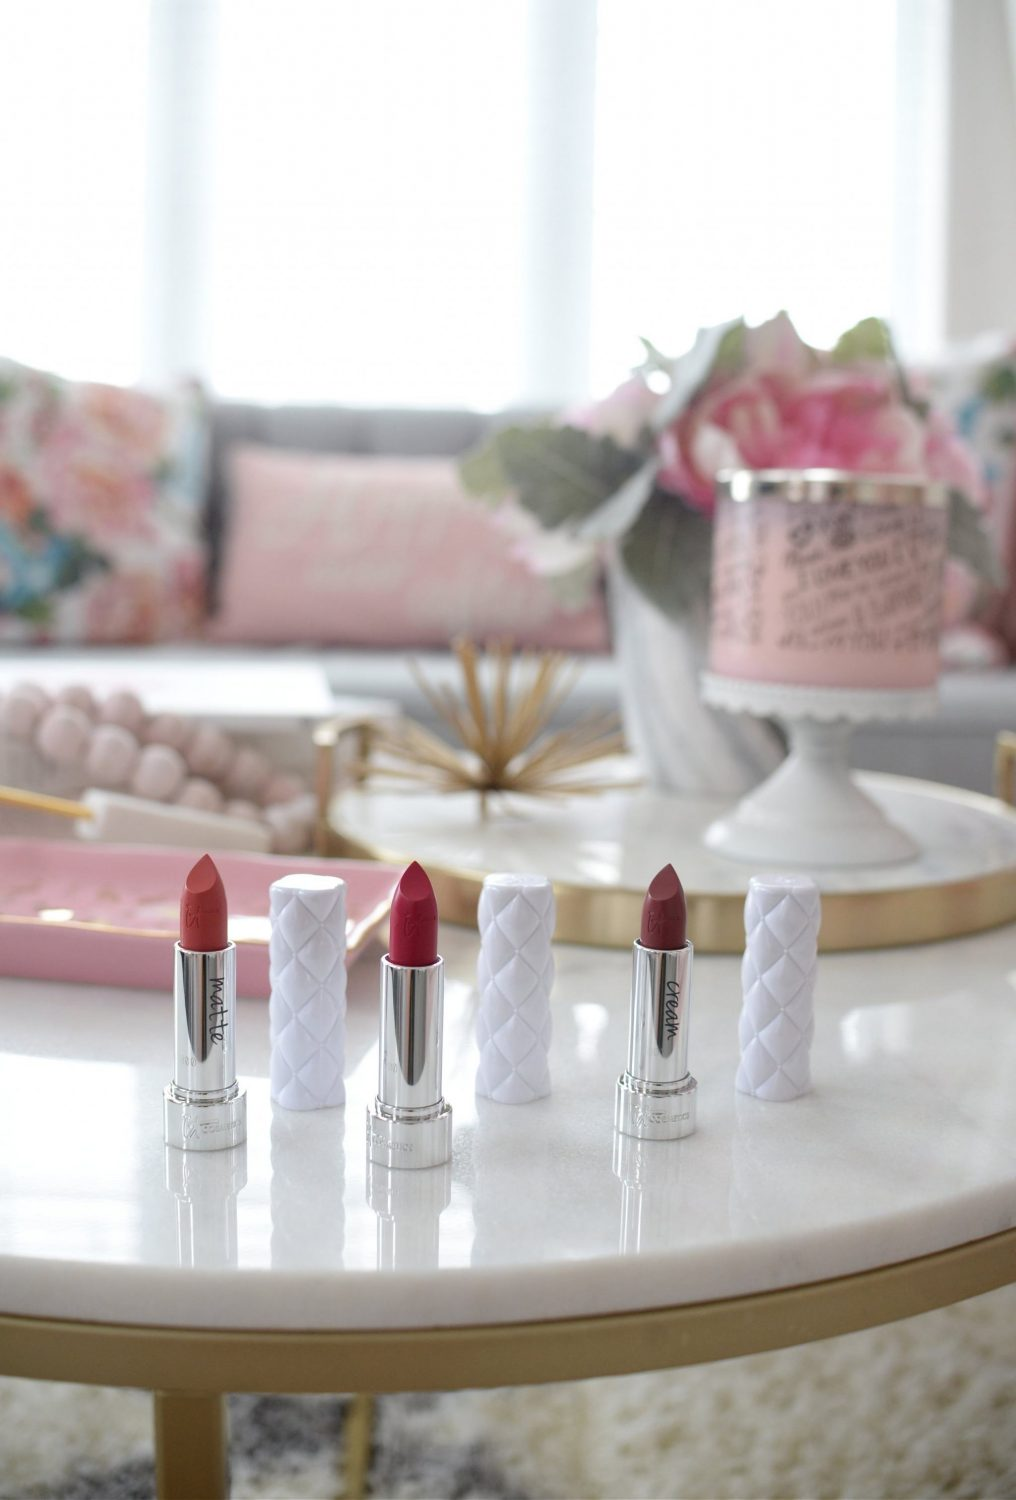 It Cosmetics Pillow Lips Collagen-Infused Lipsticks